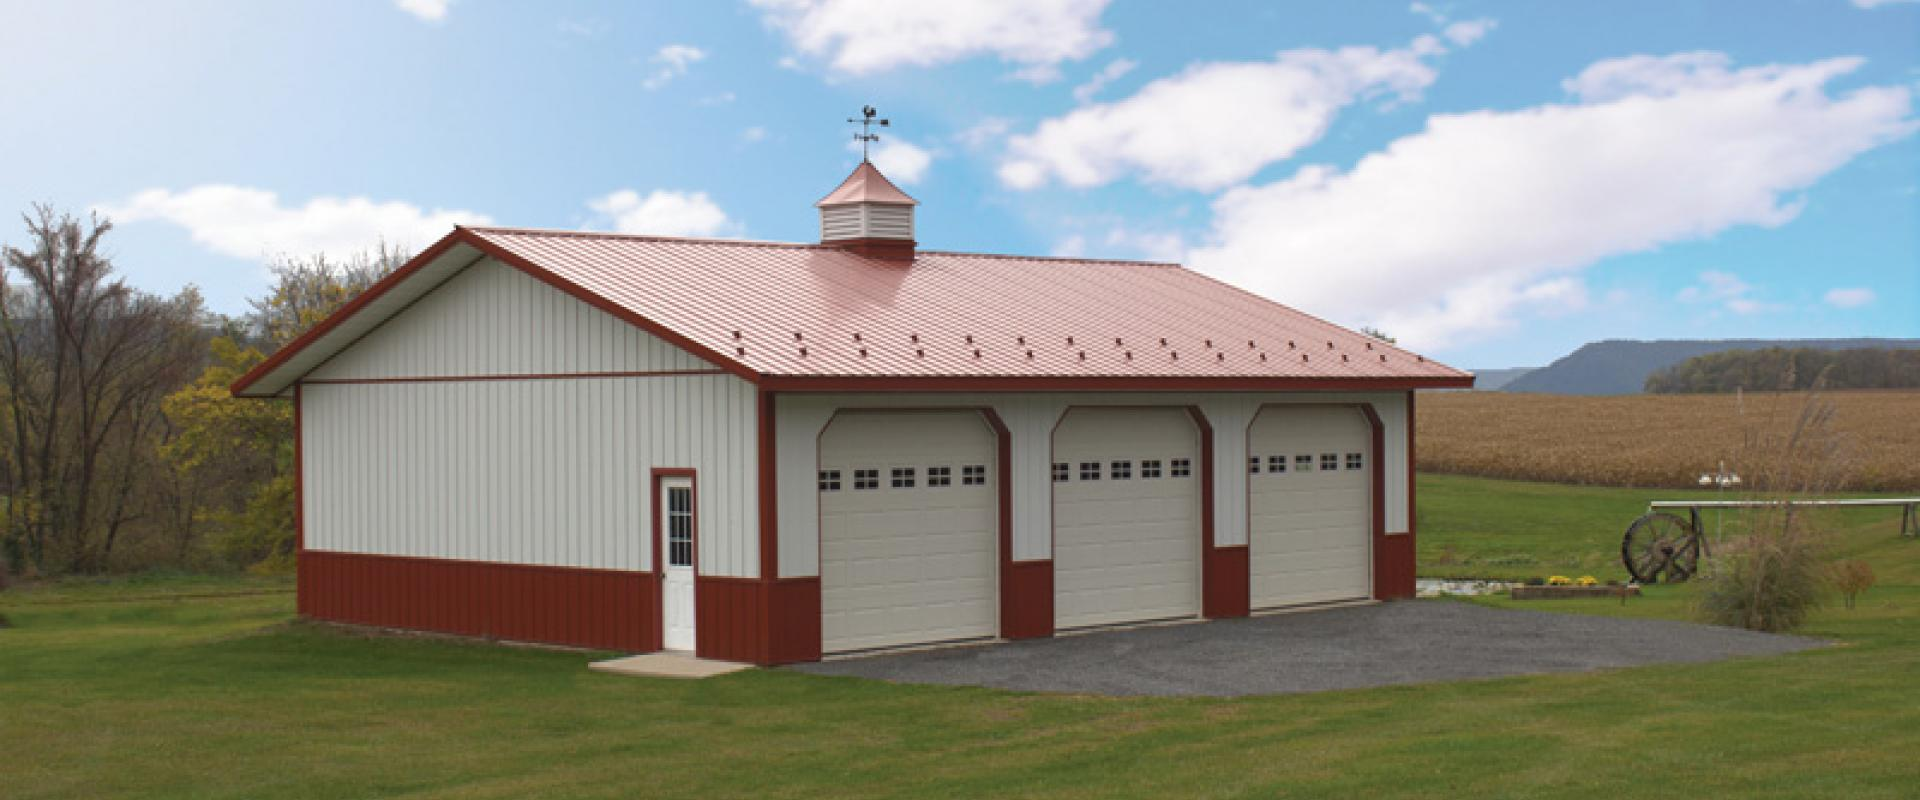 pole building garage ideas - Pole Barns Pole Buildings